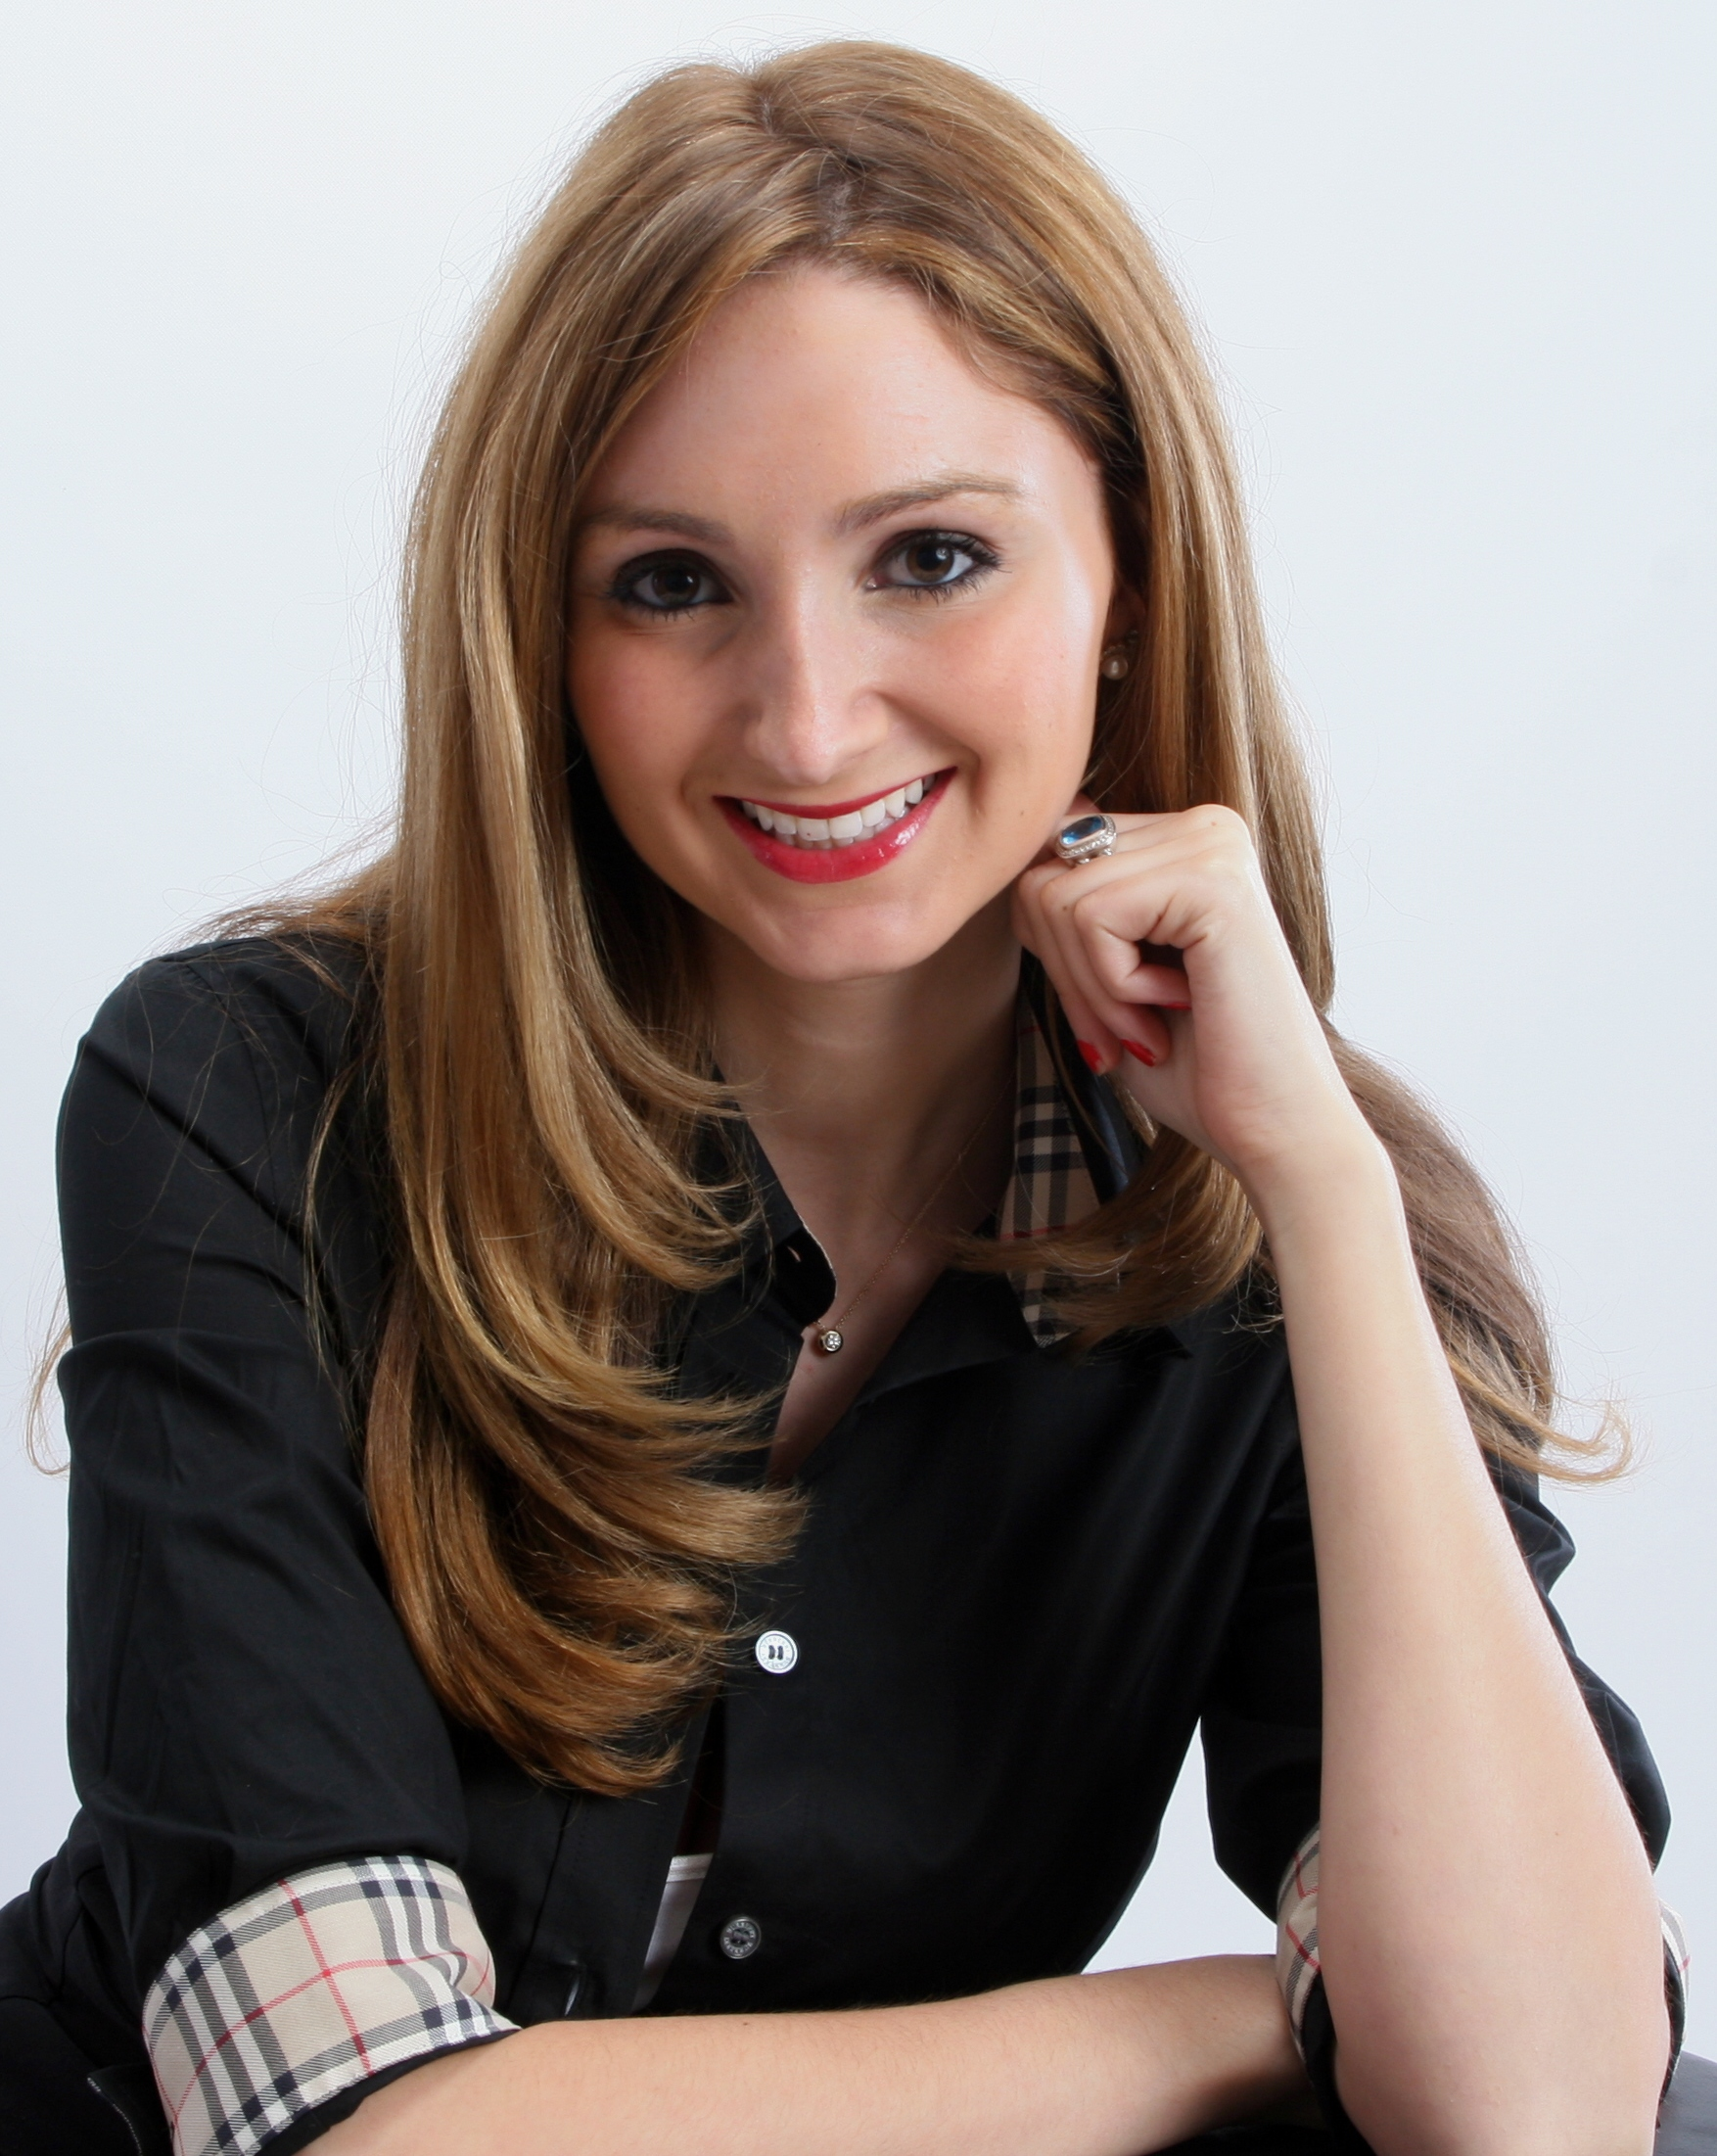 Personal Brand Interview: Social Media Specialist and PR Consultant Kris Ruby